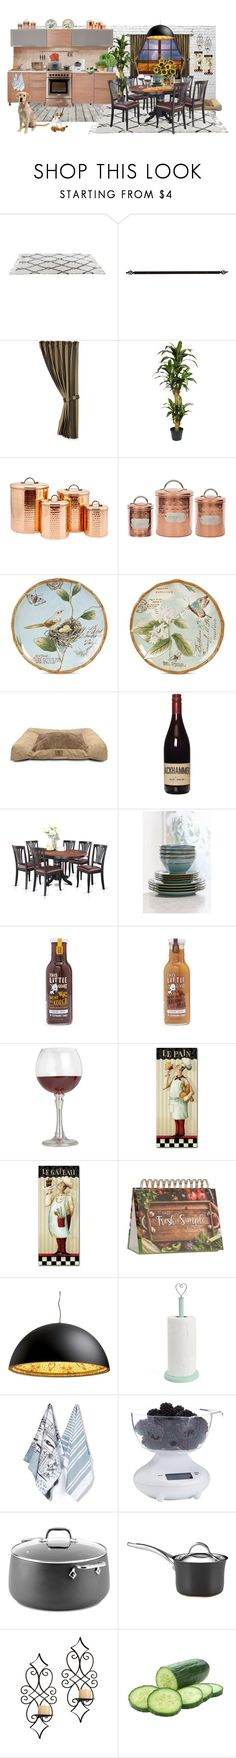 """""""Geen titel #878"""" by miriam-witte ❤ liked on Polyvore featuring interior, interiors, interior design, home, home decor, interior decorating, HiEnd Accents, Nearly Natural, Old Dutch and Fitz & Floyd"""